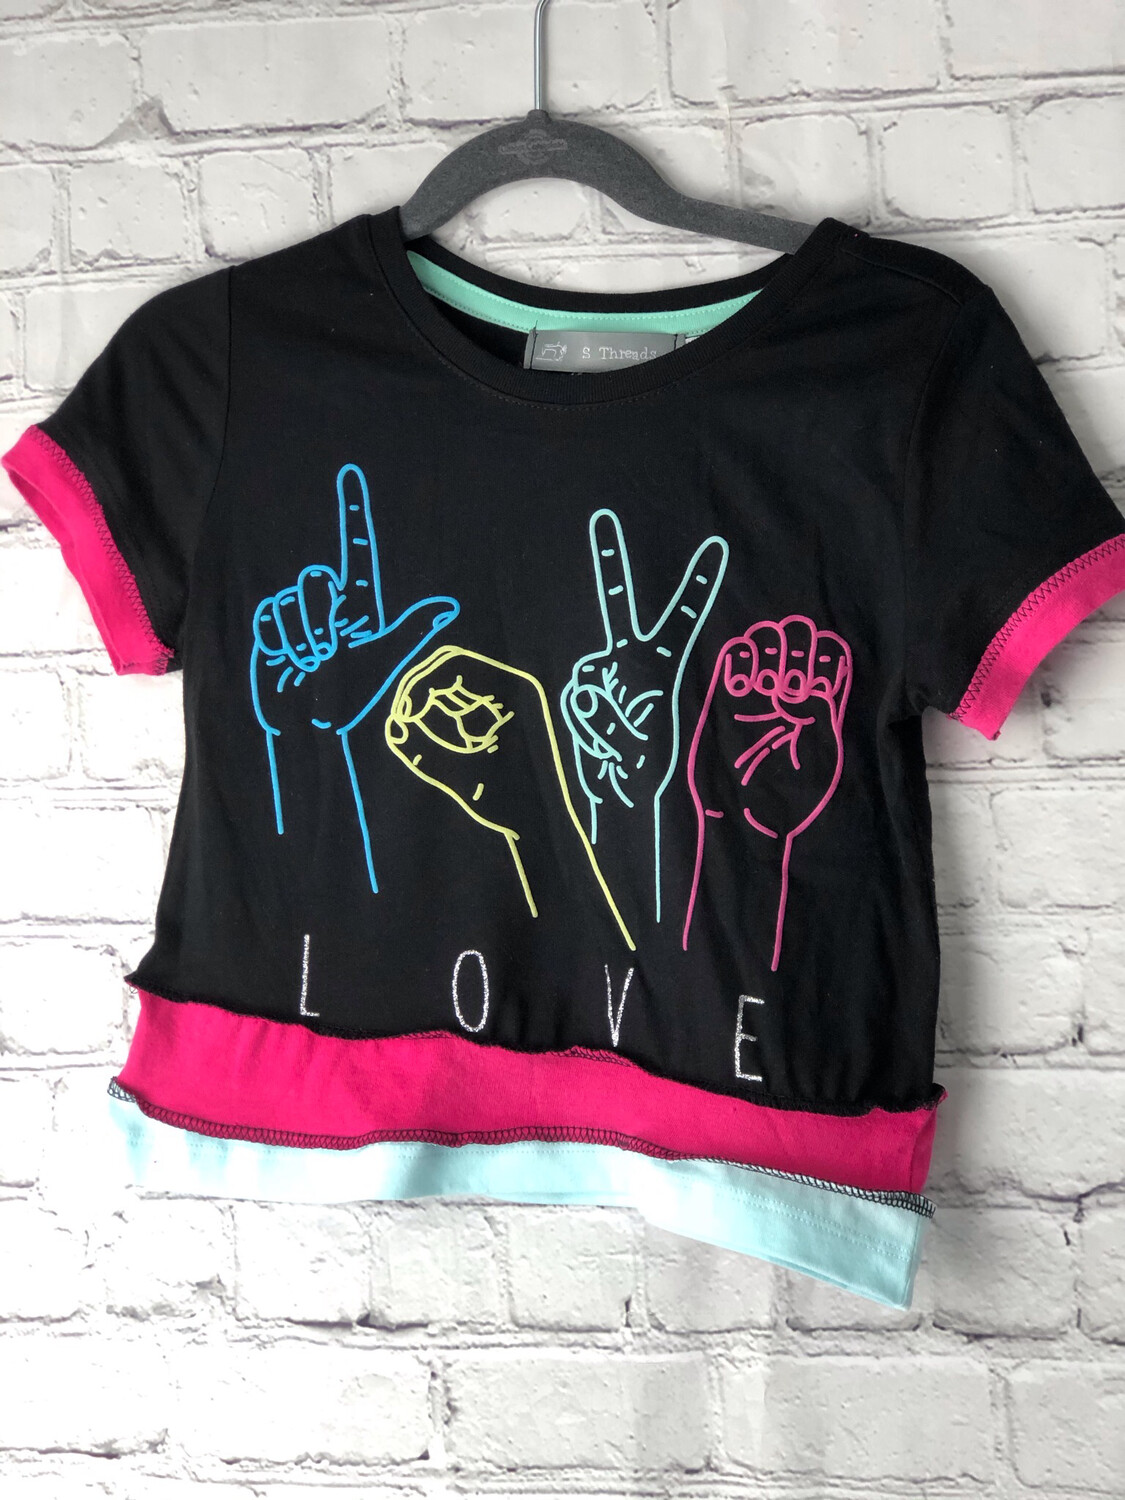 S Threads Kids Upcycled Short Sleeve Hot Pink and Blue Sign Language Love Symbol Shirt Size Child 5T